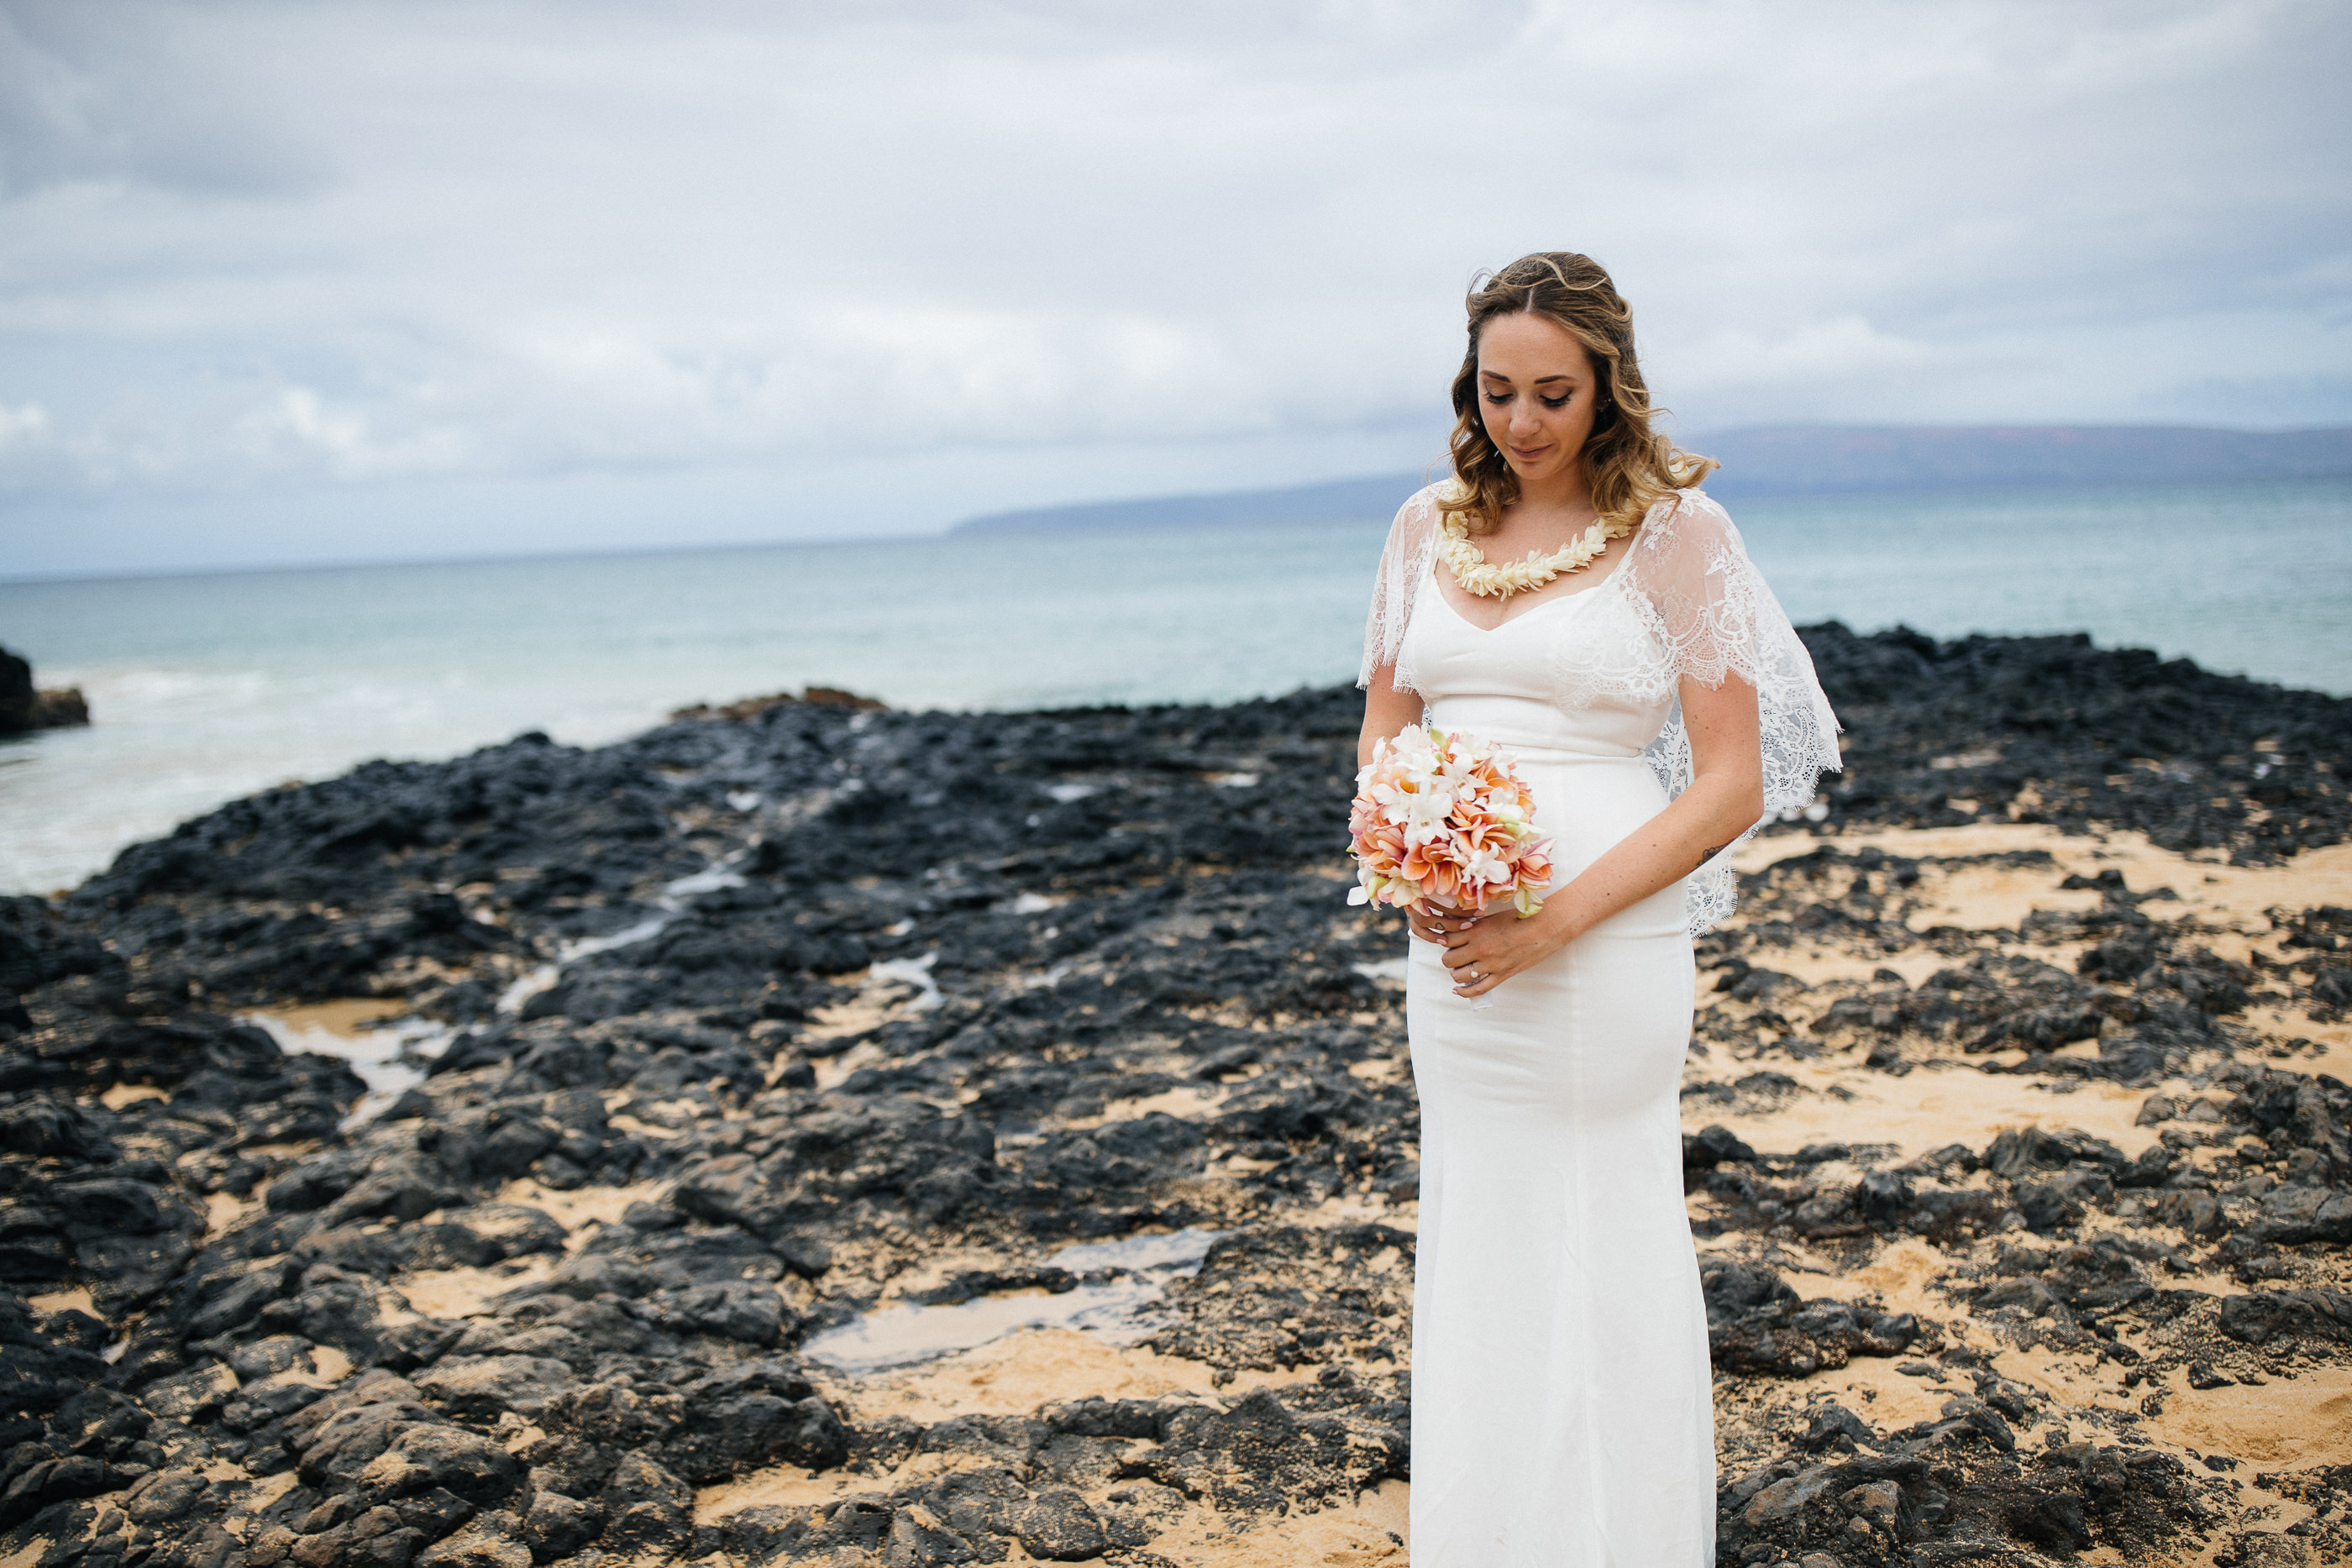 Bridal Portraits Maui Hawaii